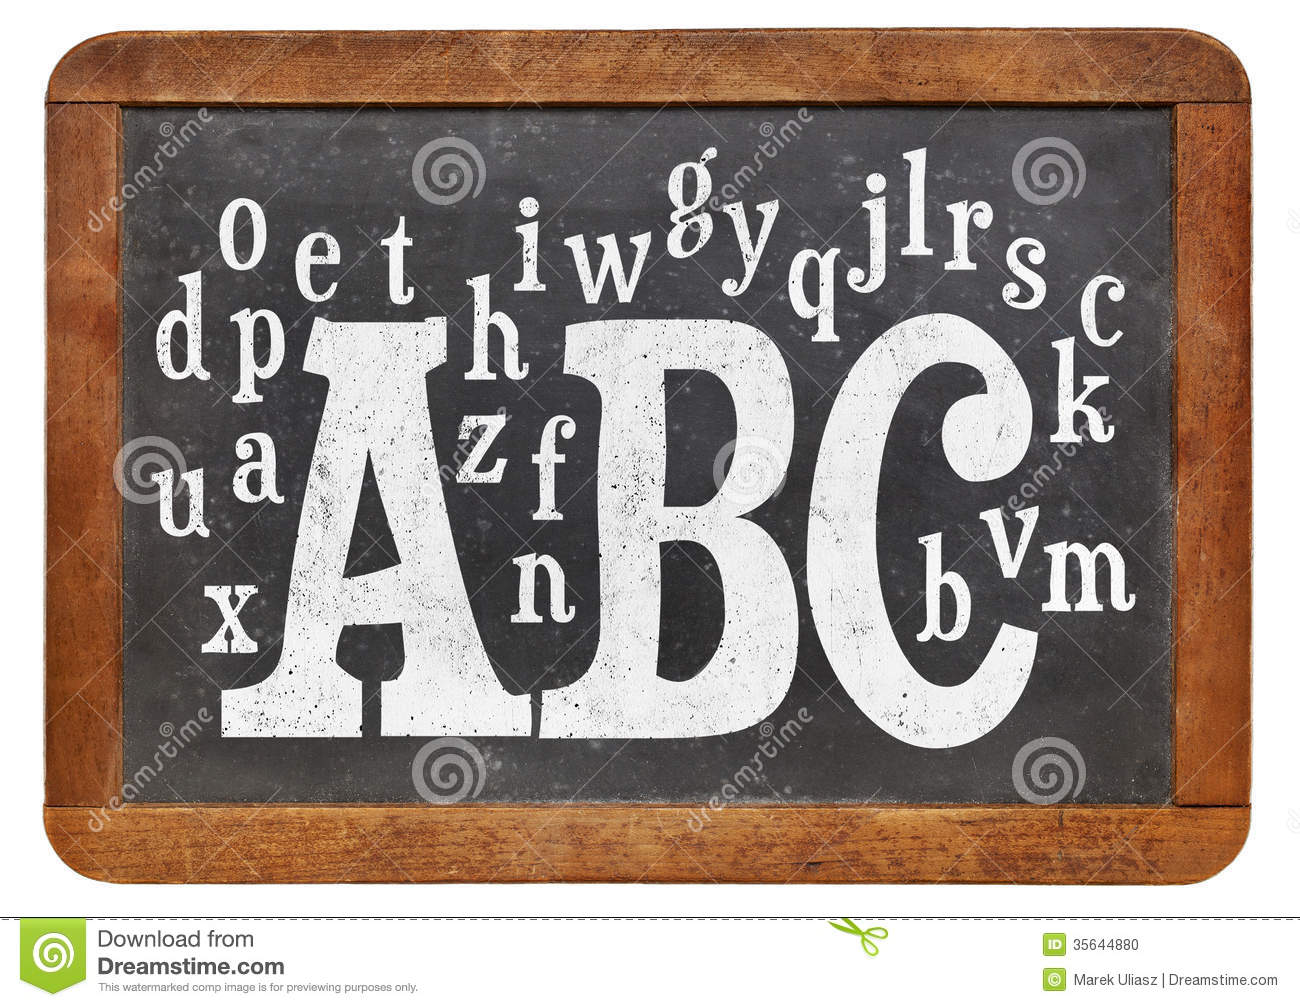 ABC and random letters of alphabet on a vintage slate blackboard ...: dreamstime.com/stock-photo-abc-alphabet-blackboard-random-letters...